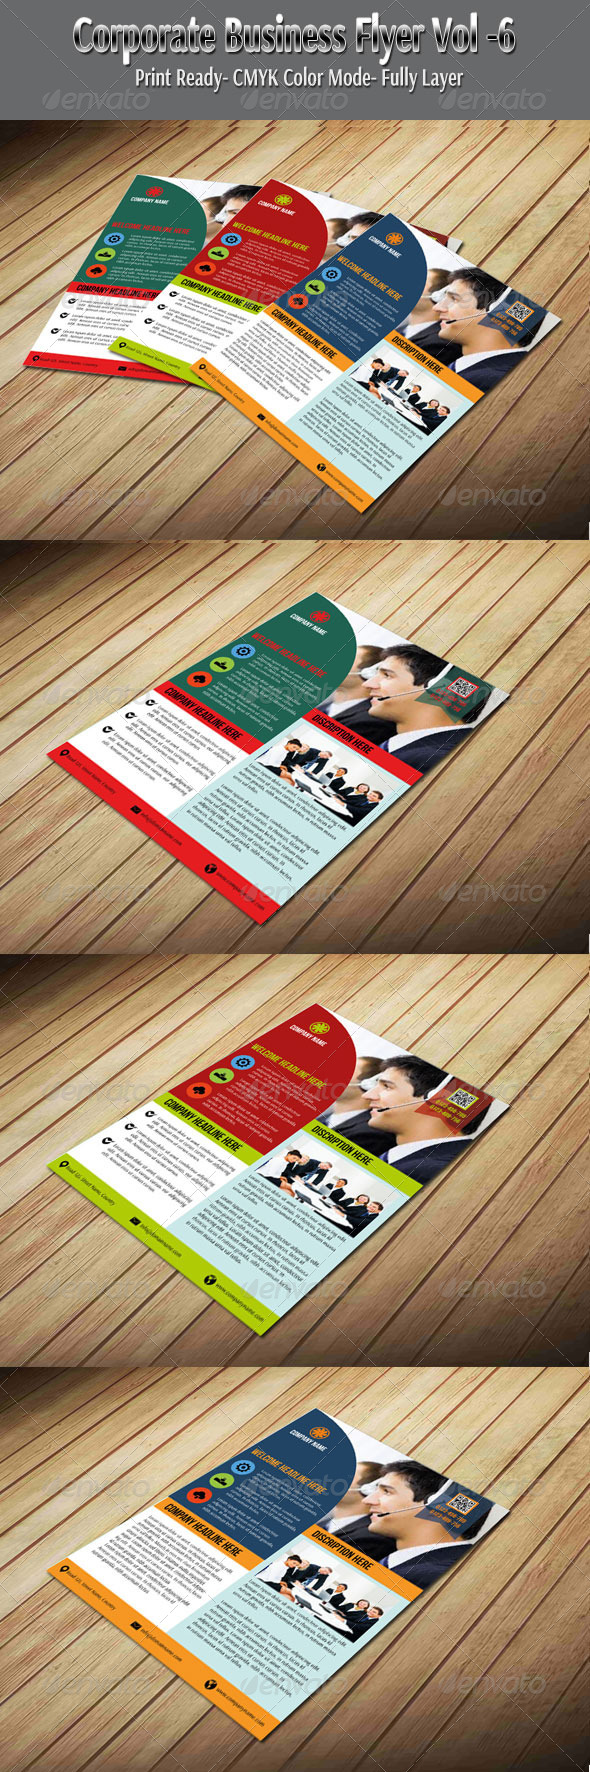 Corporate Business Flyer Vol-6 - Corporate Flyers